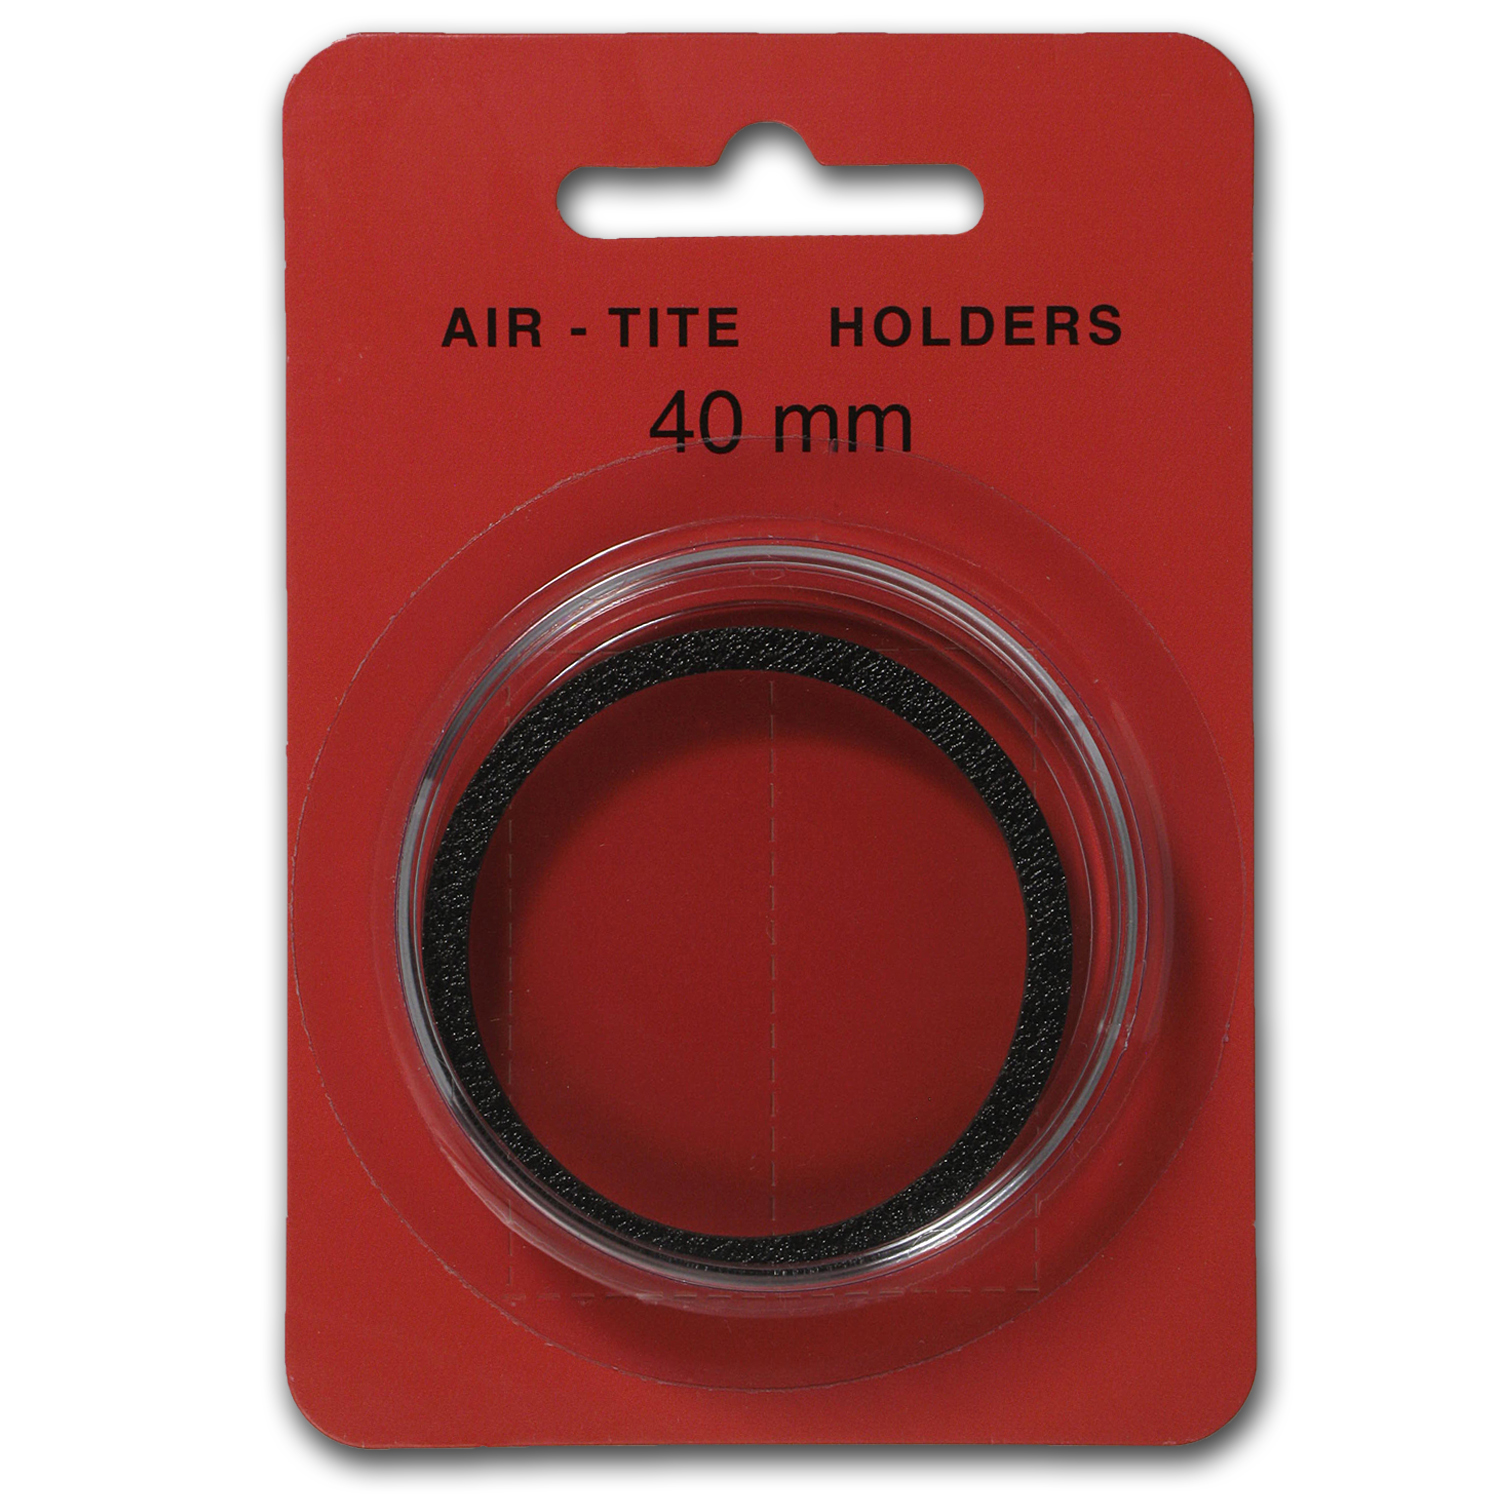 Air-Tite Holder w/Black Gasket - 40 mm